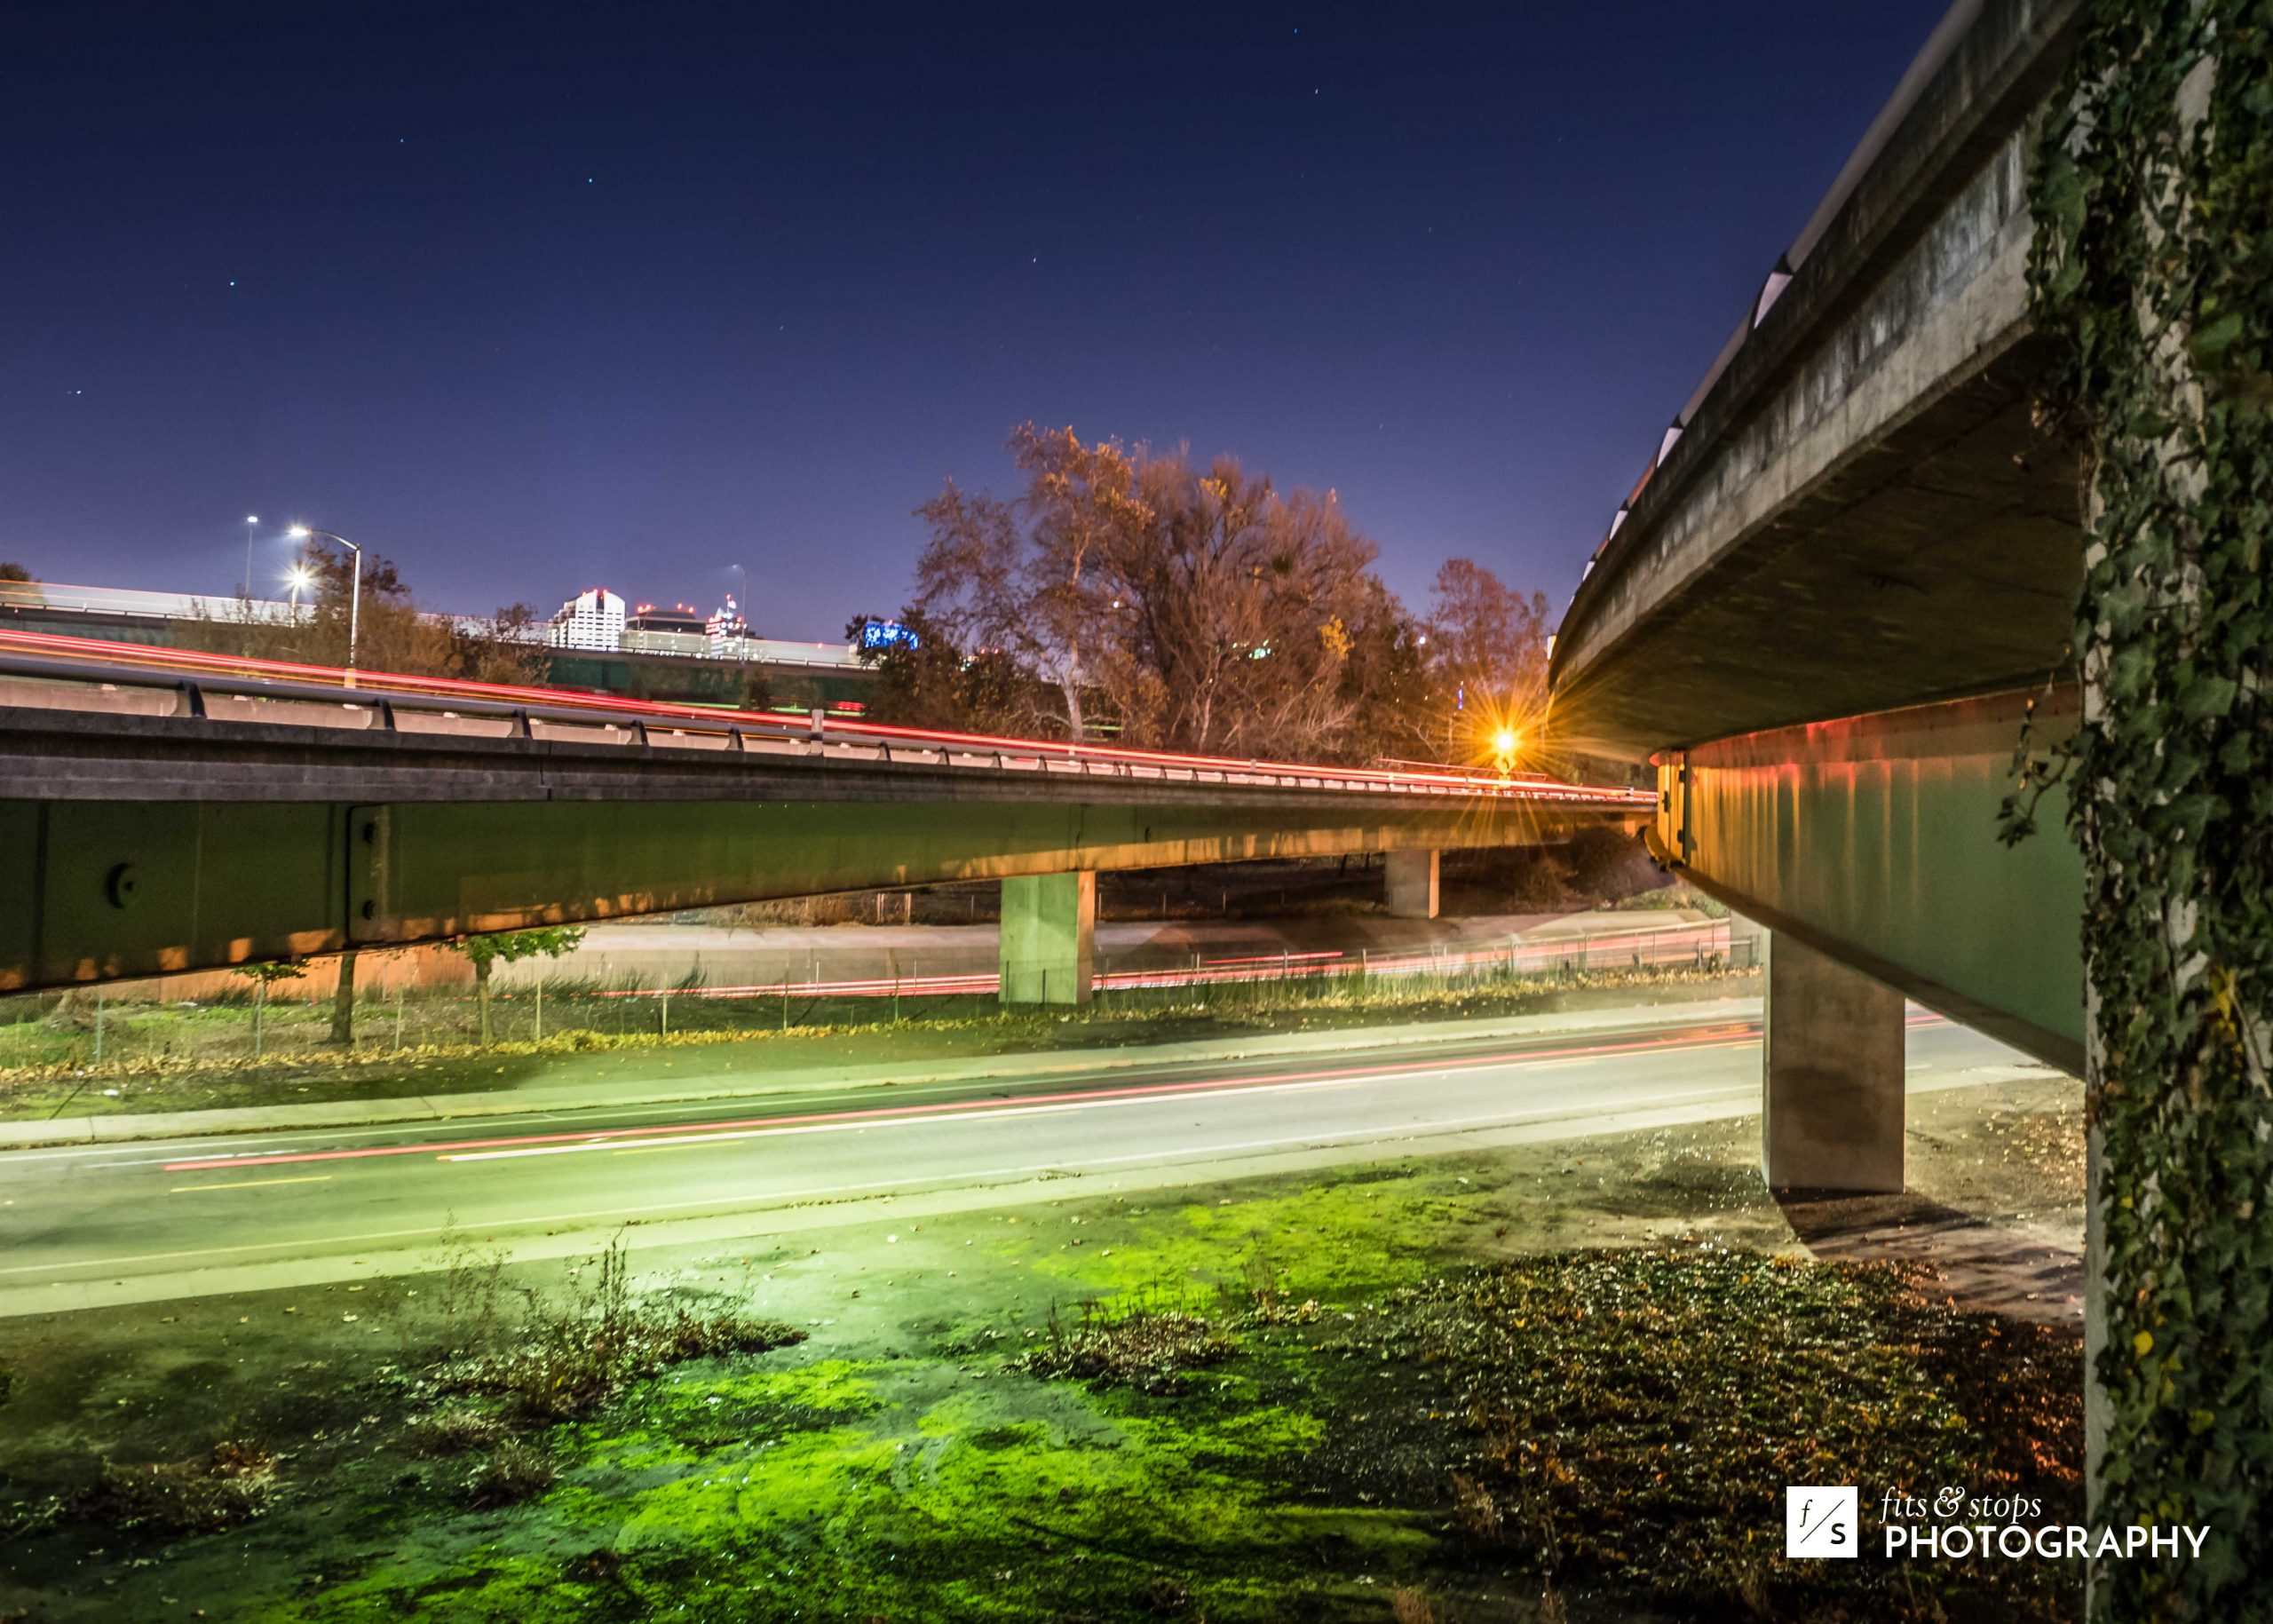 A long-exposure photograph taken between the elevated highways of downtown Sacramento, California at nighttime.